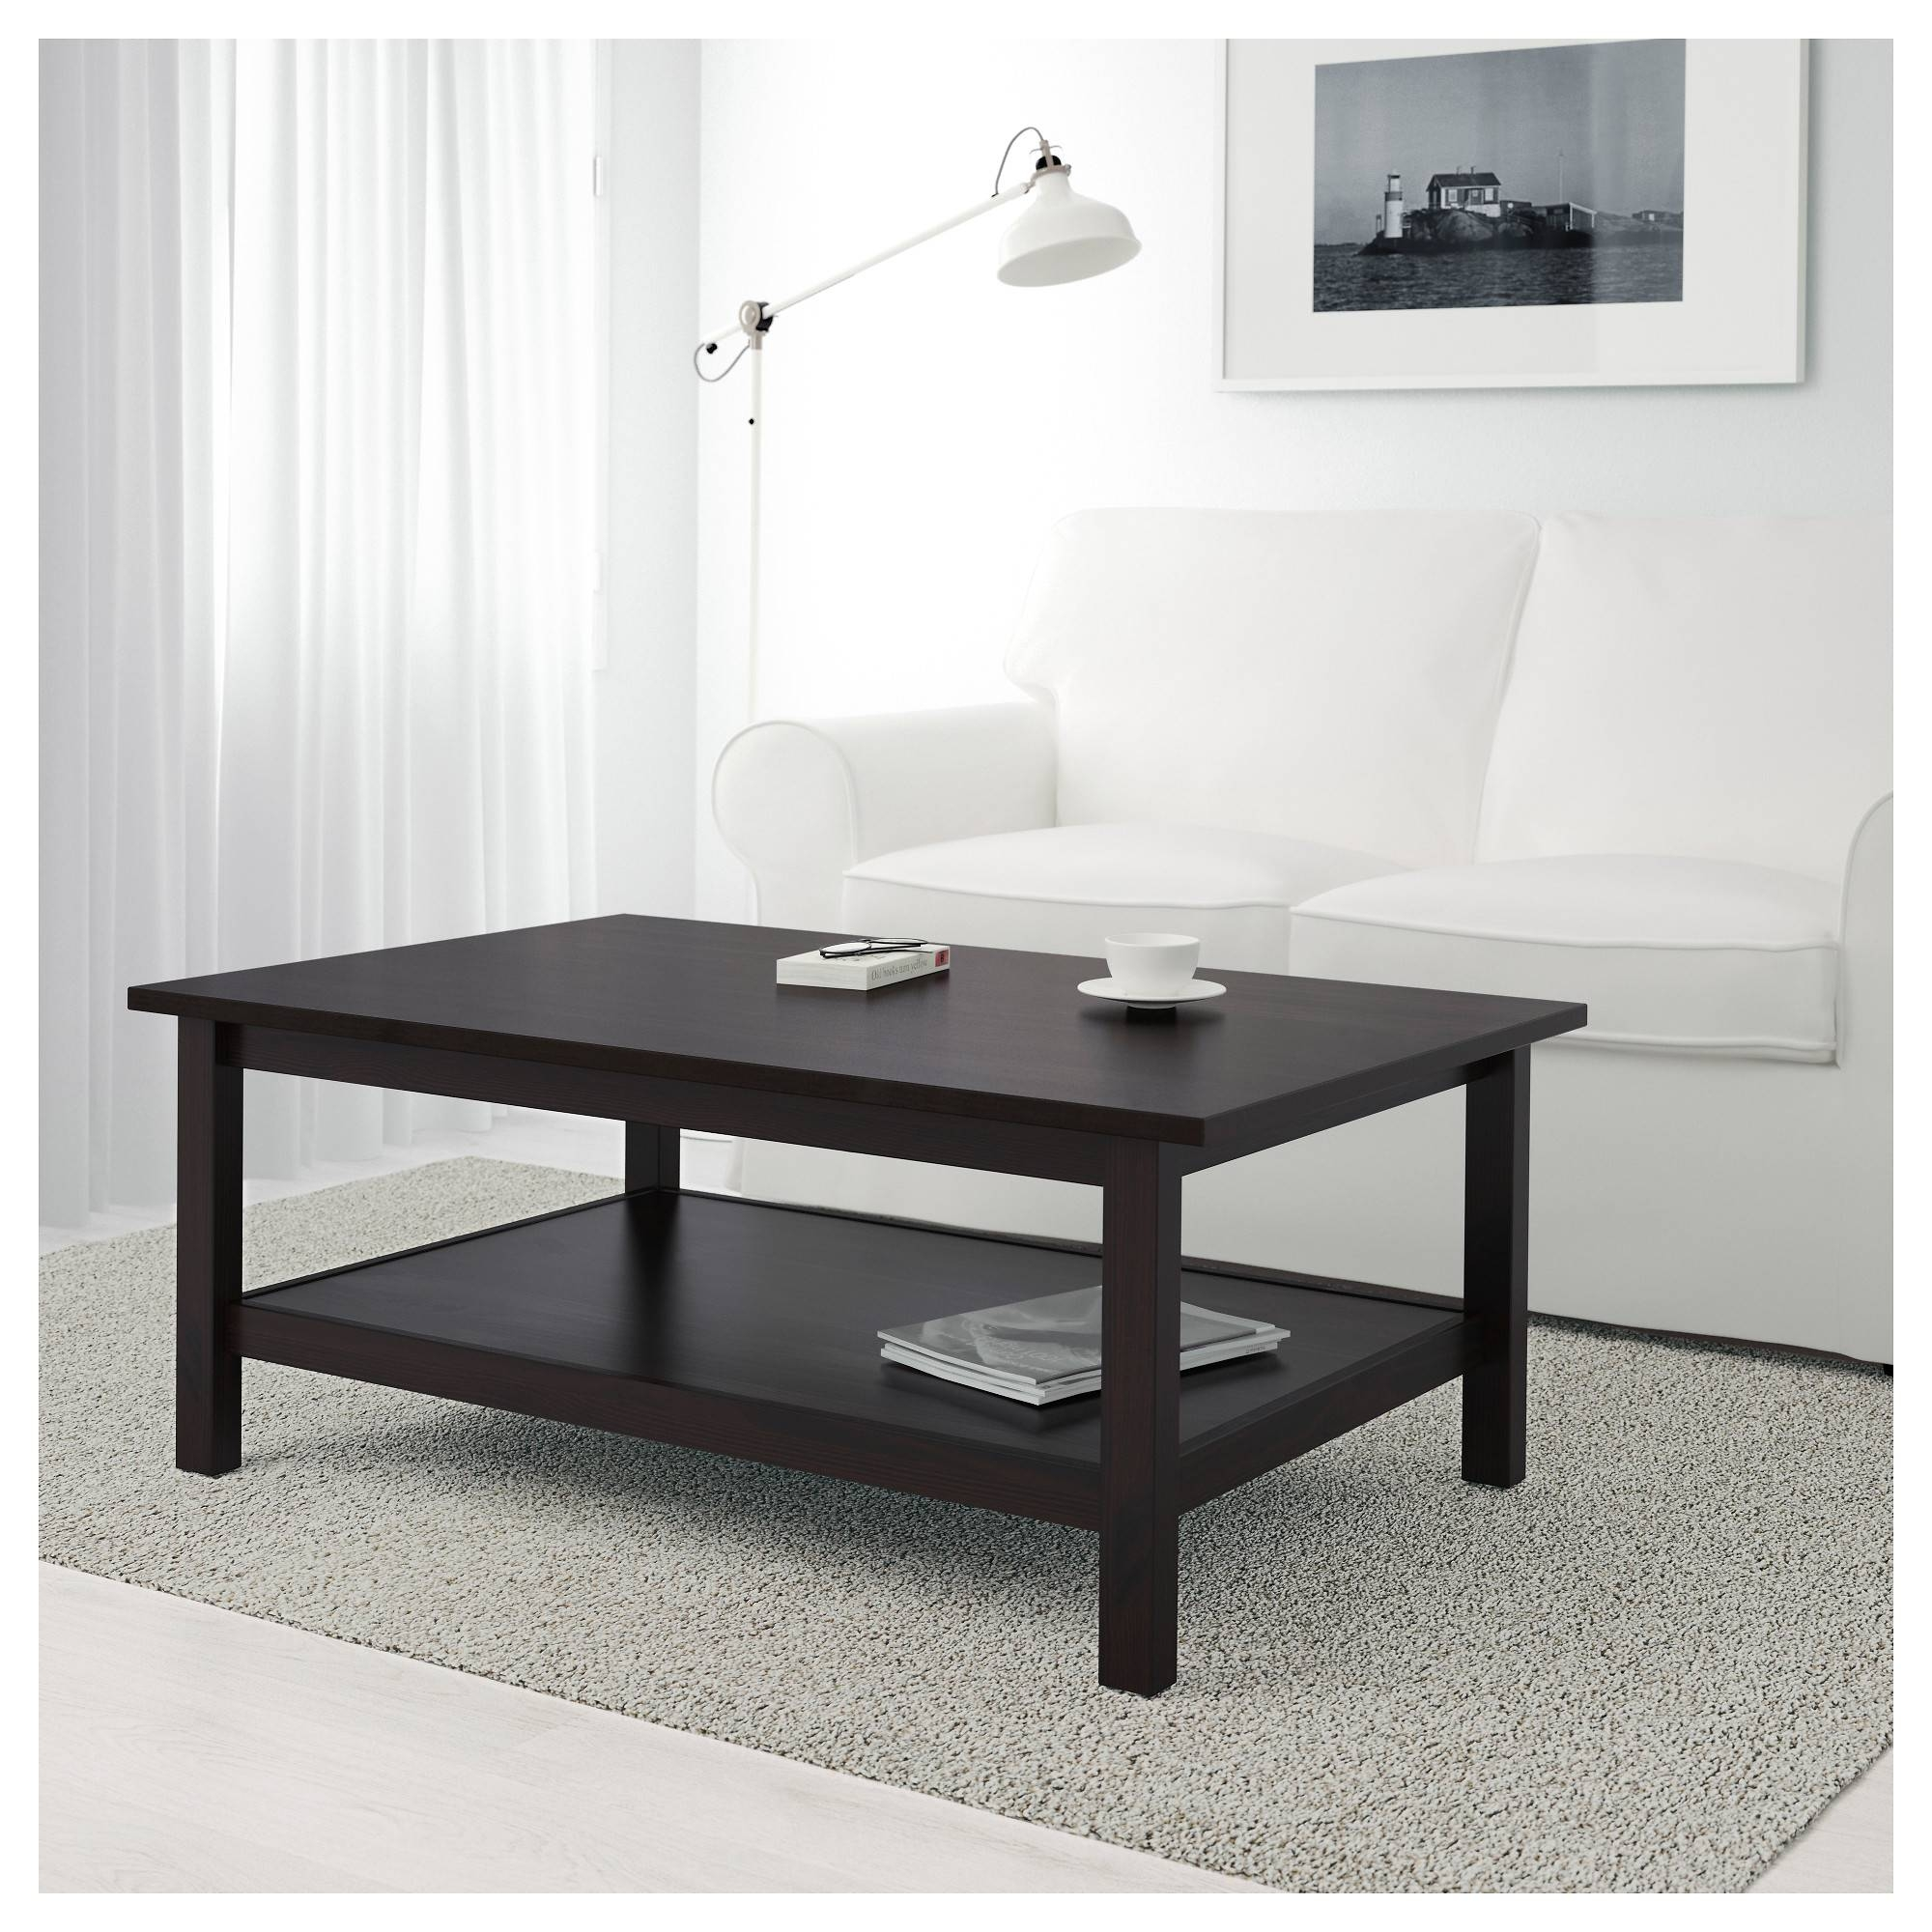 Hemnes Coffee Table - Black-Brown - Ikea intended for White and Black Coffee Tables (Image 10 of 30)